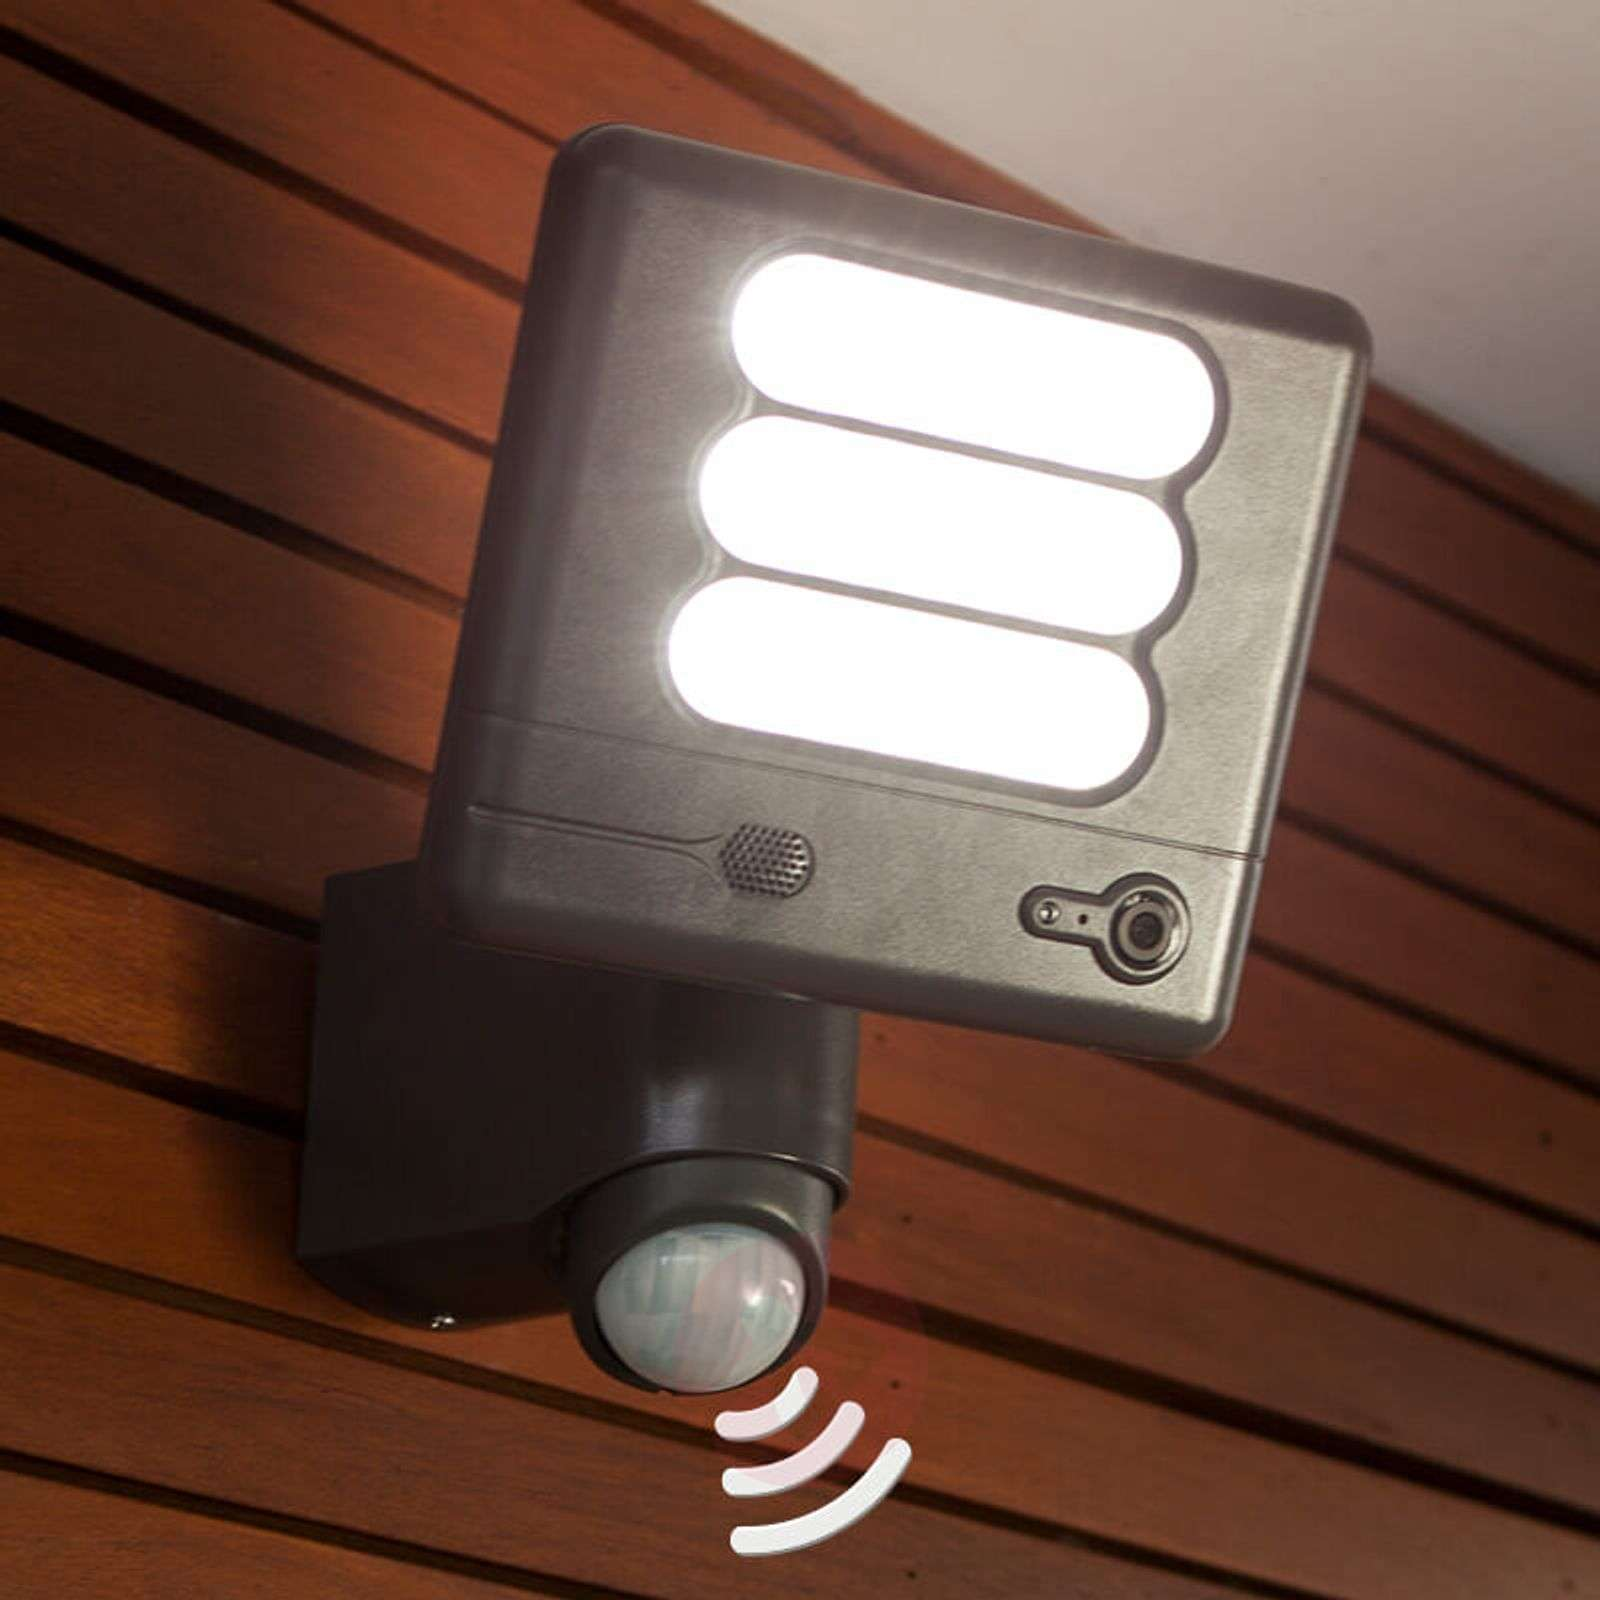 Esa Cam - LED wall light with security camera | Lights.co.uk